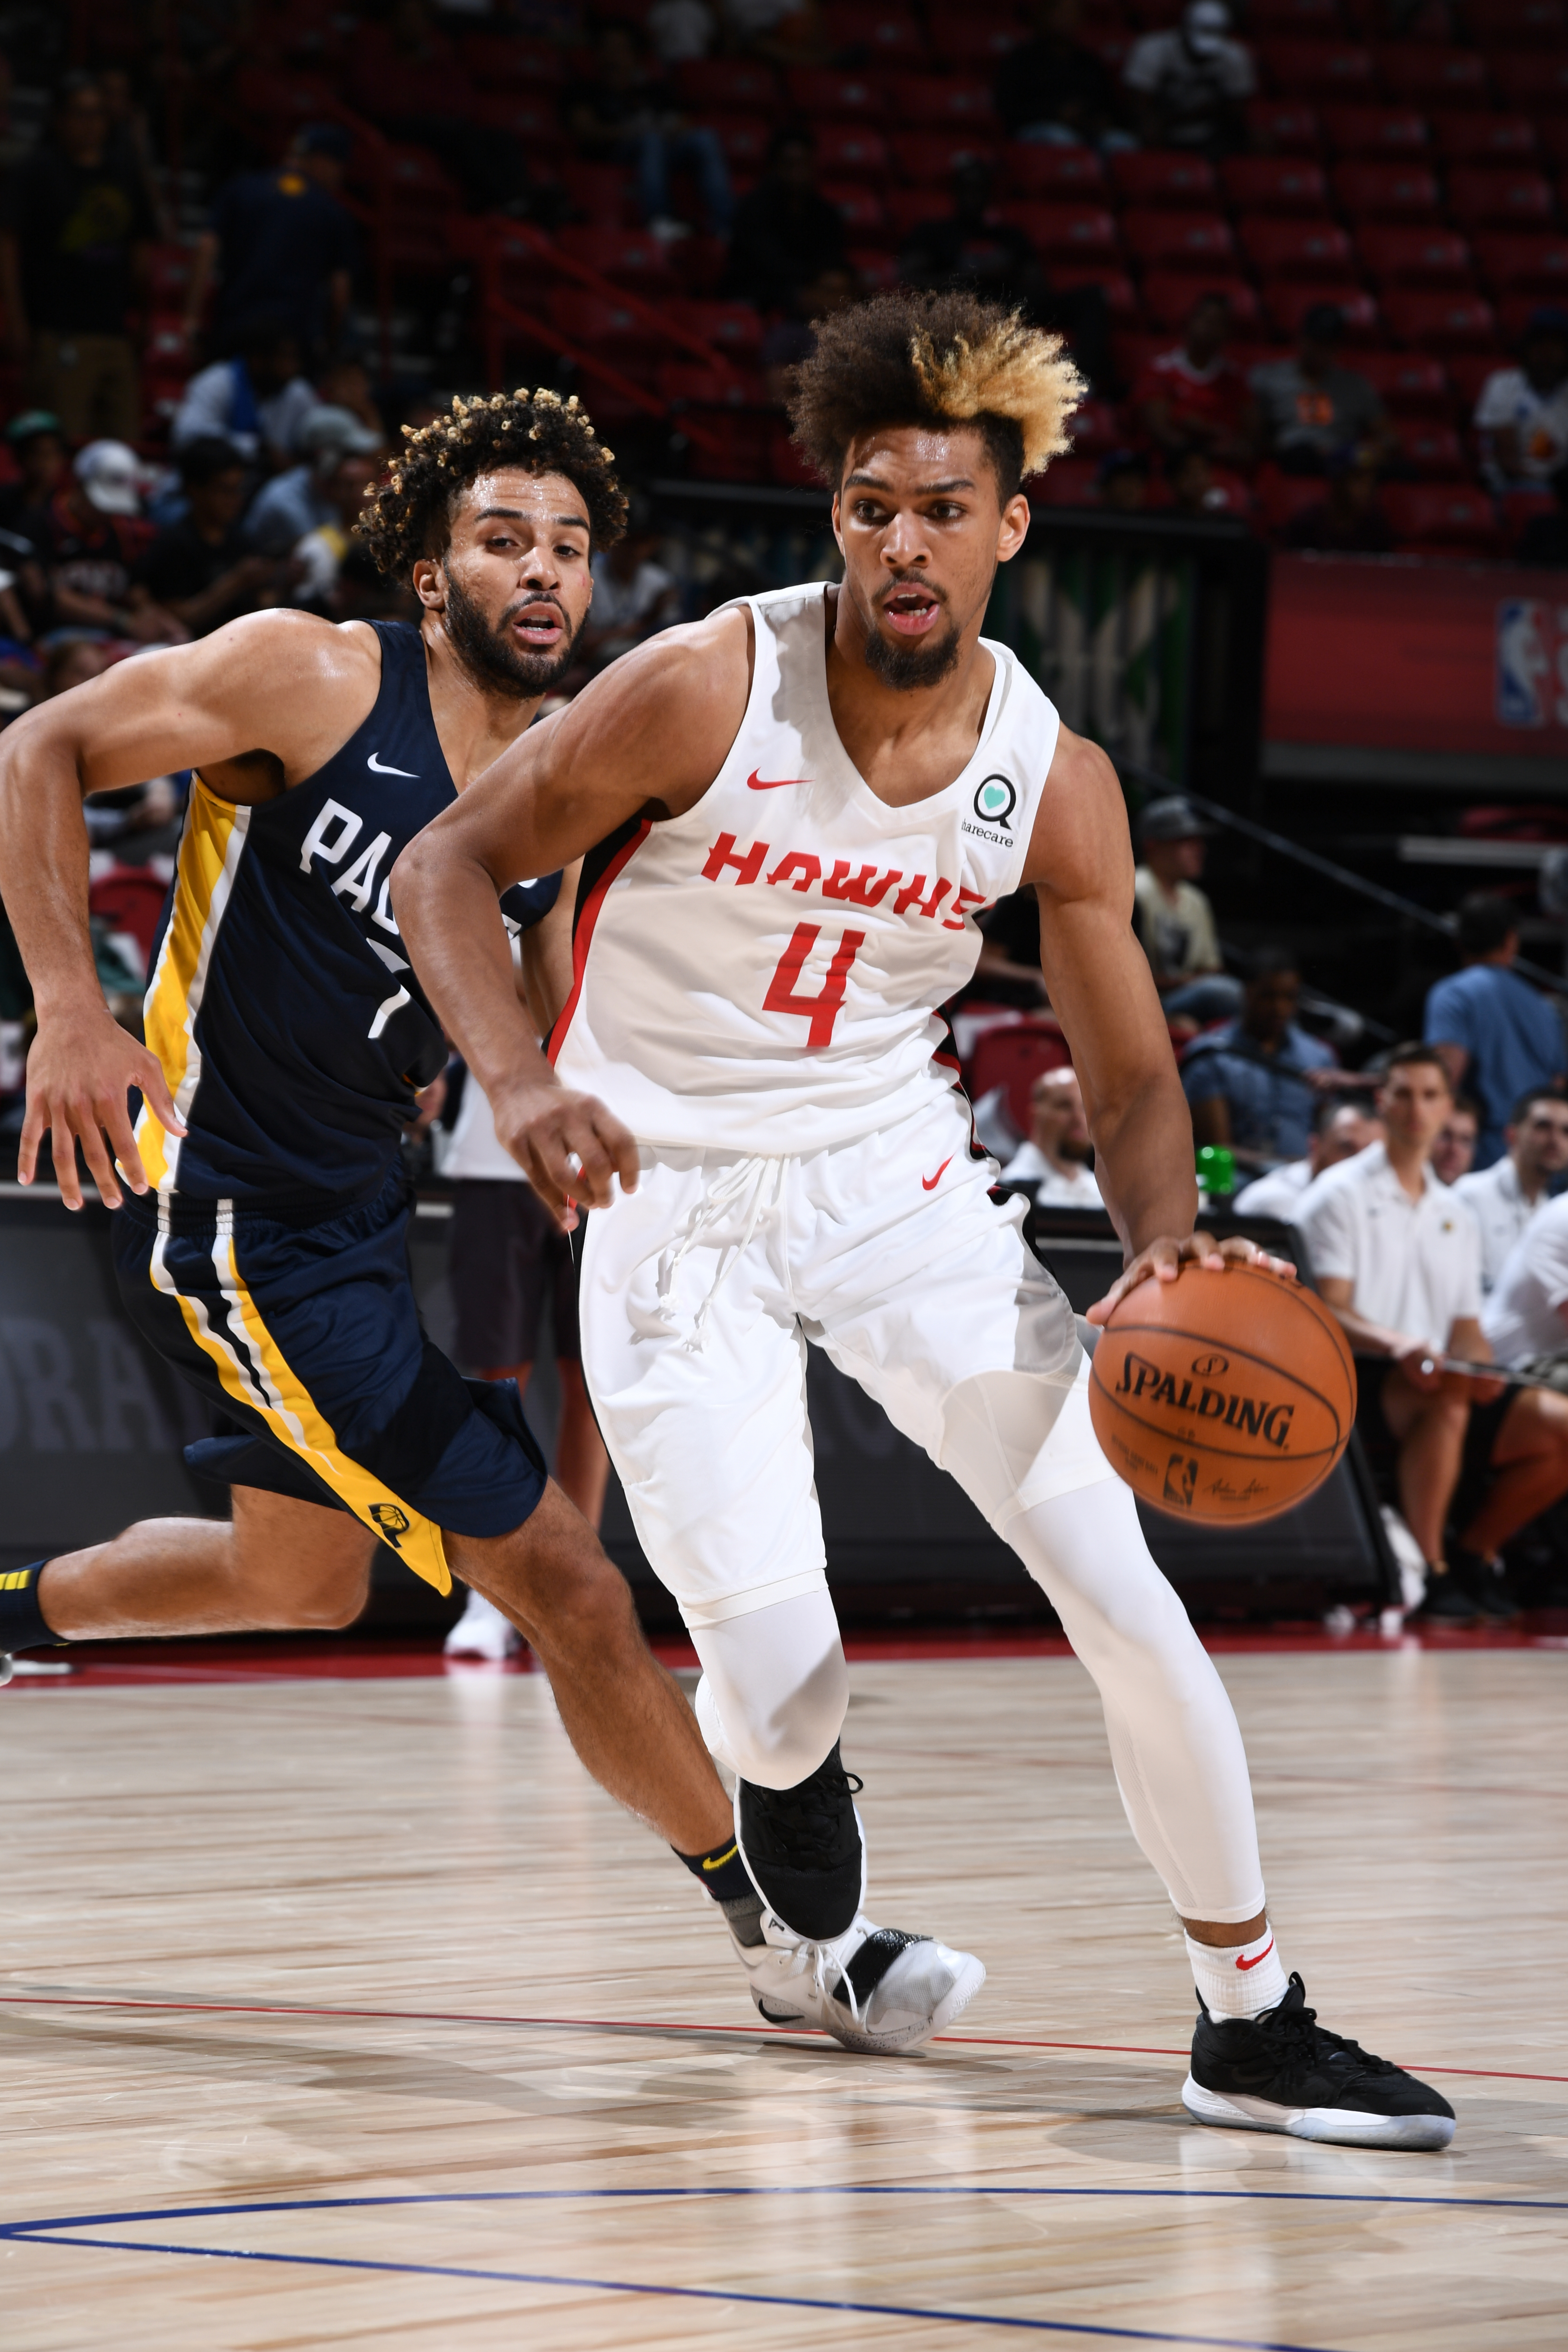 2019 Las Vegas Summer League - Day 5 - Indiana Pacers v Atlanta Hawks